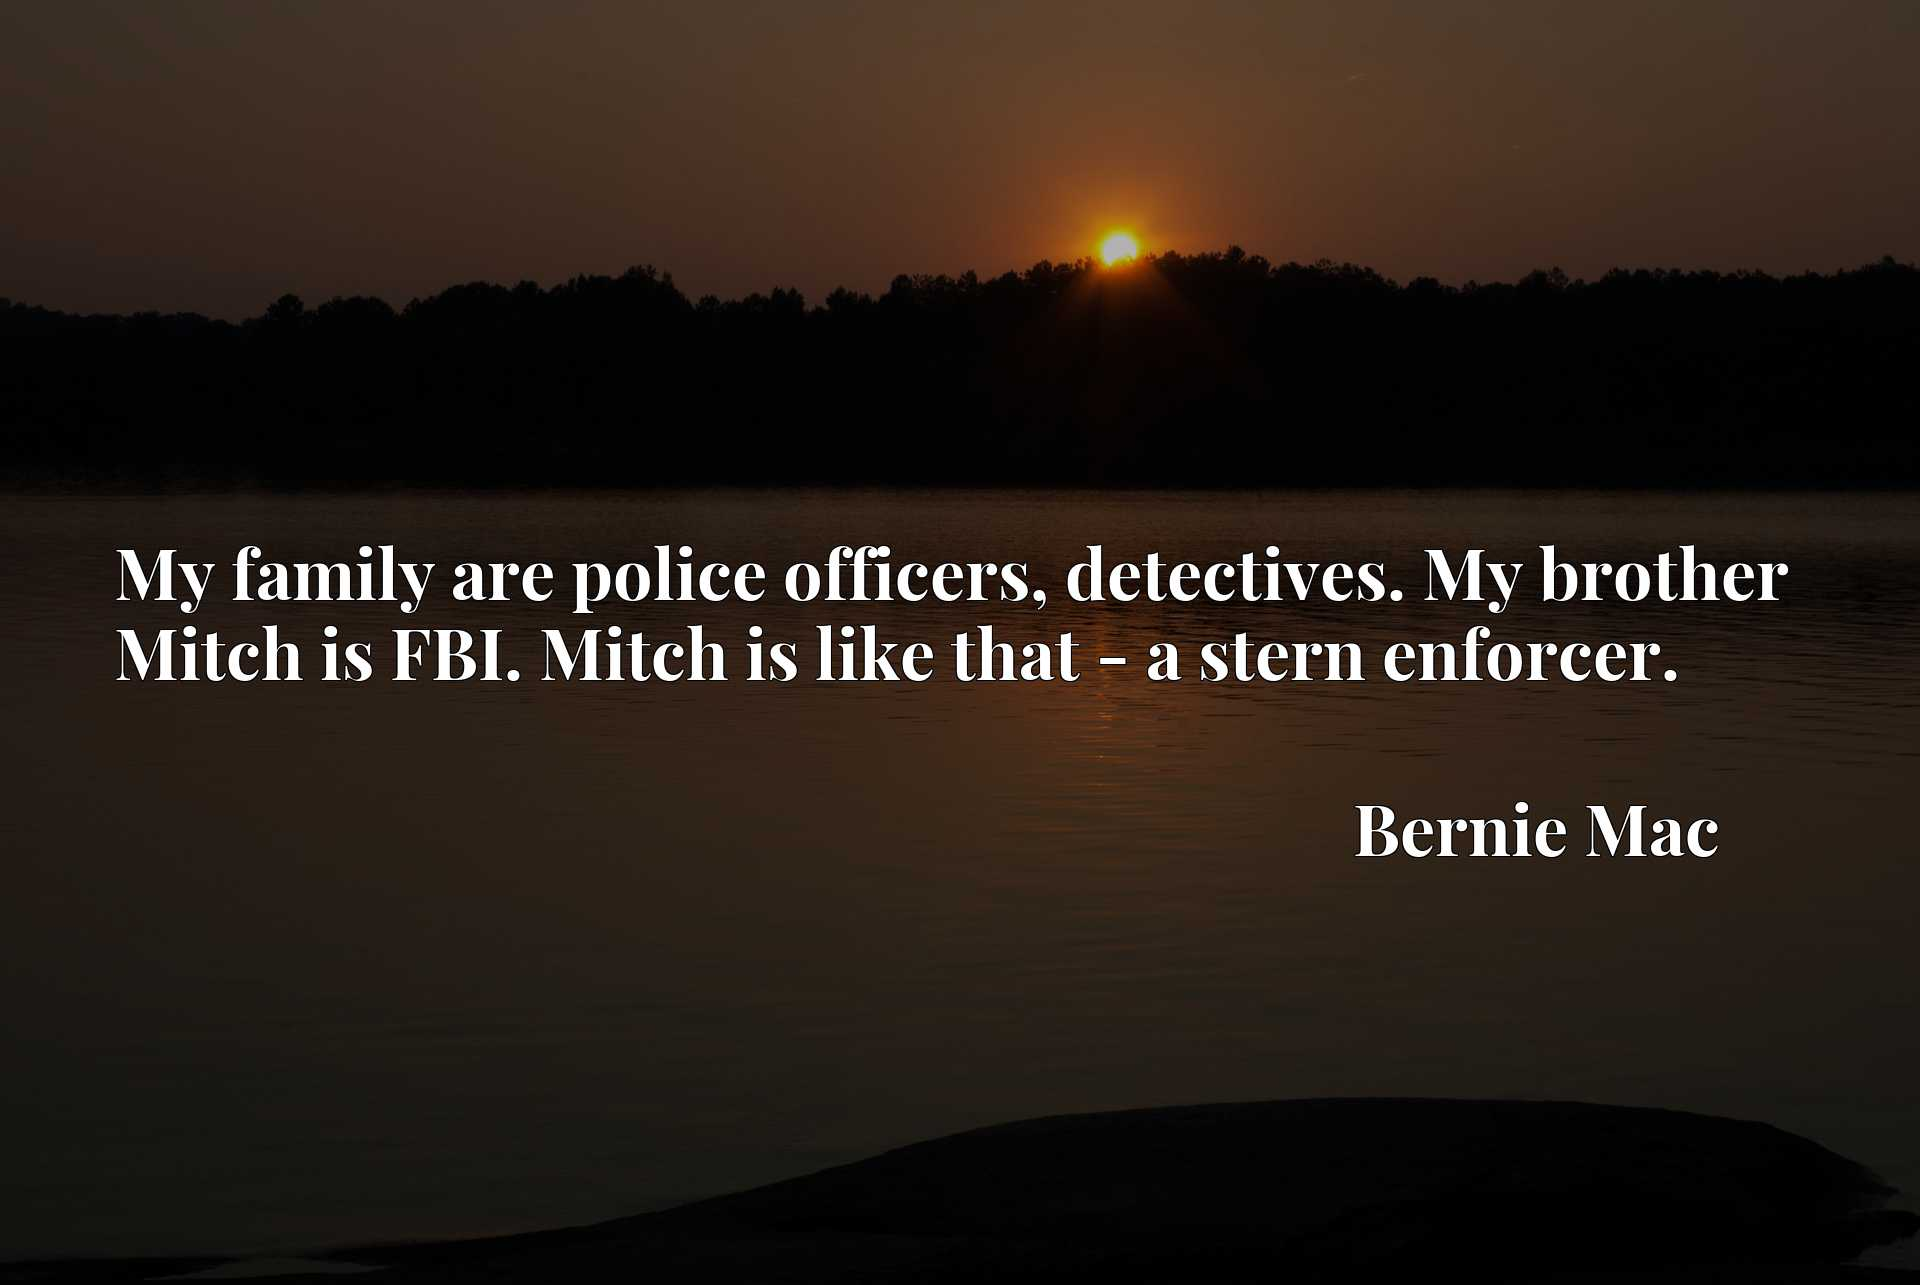 My family are police officers, detectives. My brother Mitch is FBI. Mitch is like that - a stern enforcer.